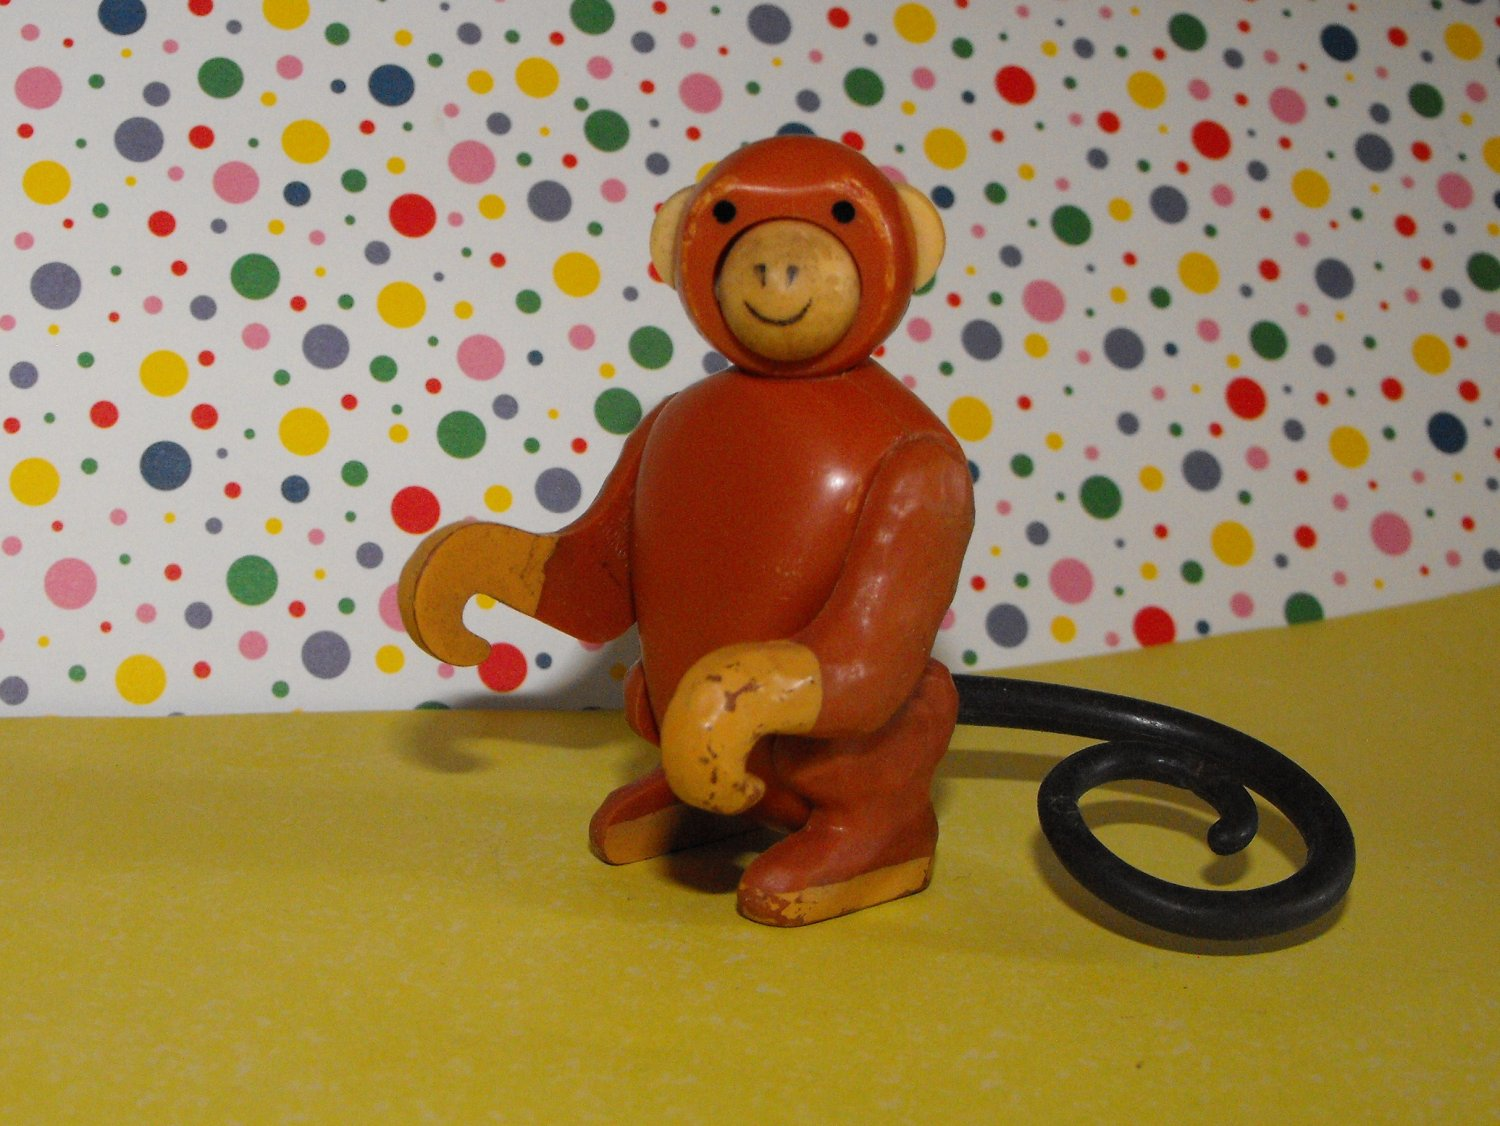 *SOLD*Vintage Fisher Price Little People Circus Zoo Train Monkey